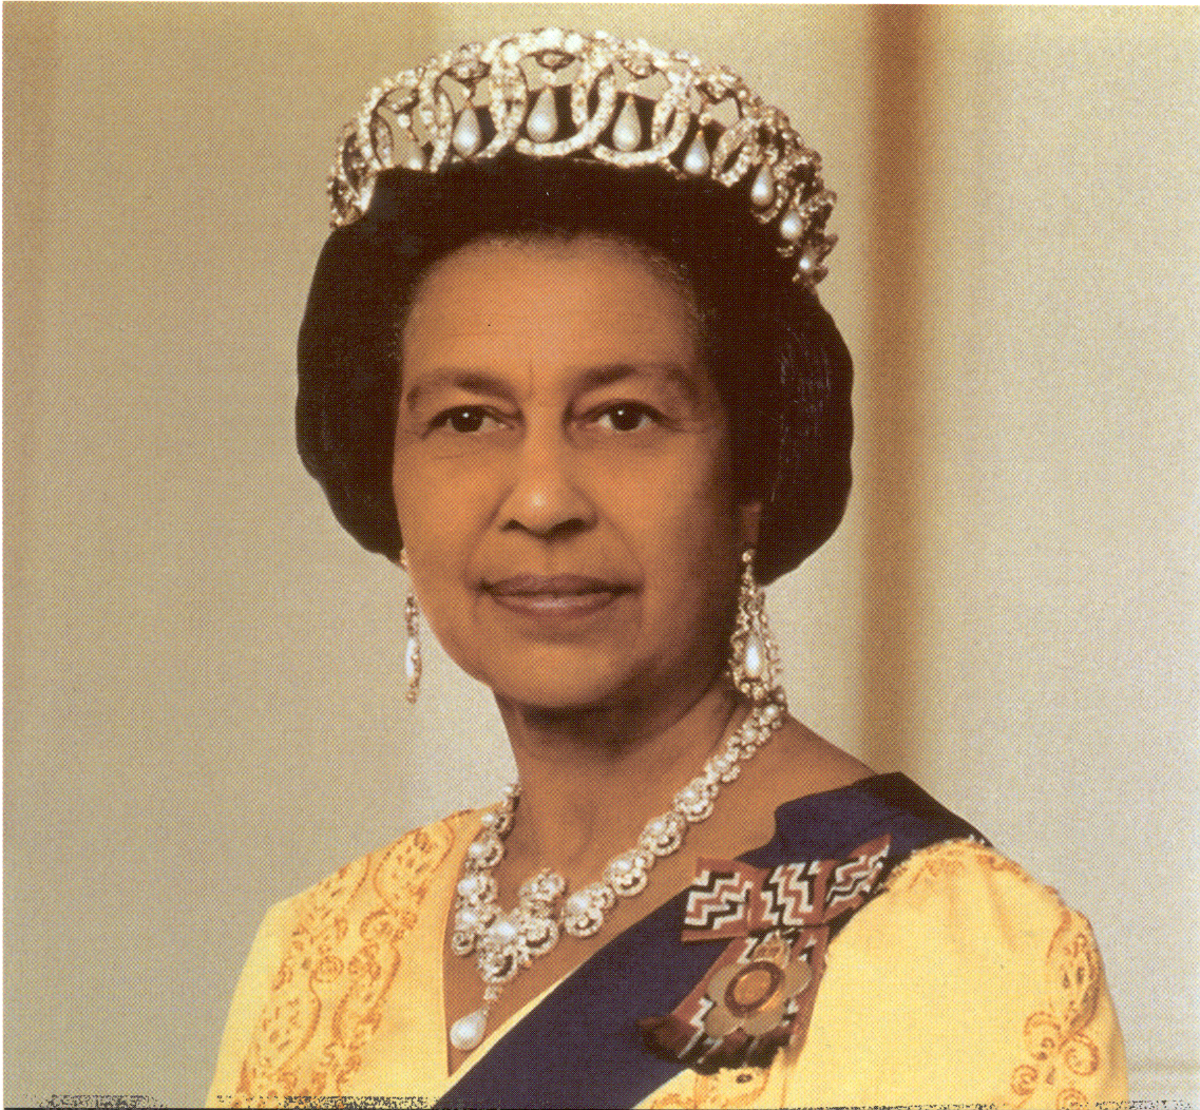 British Royal Family Shocker - Queen Elizabeth II is Black